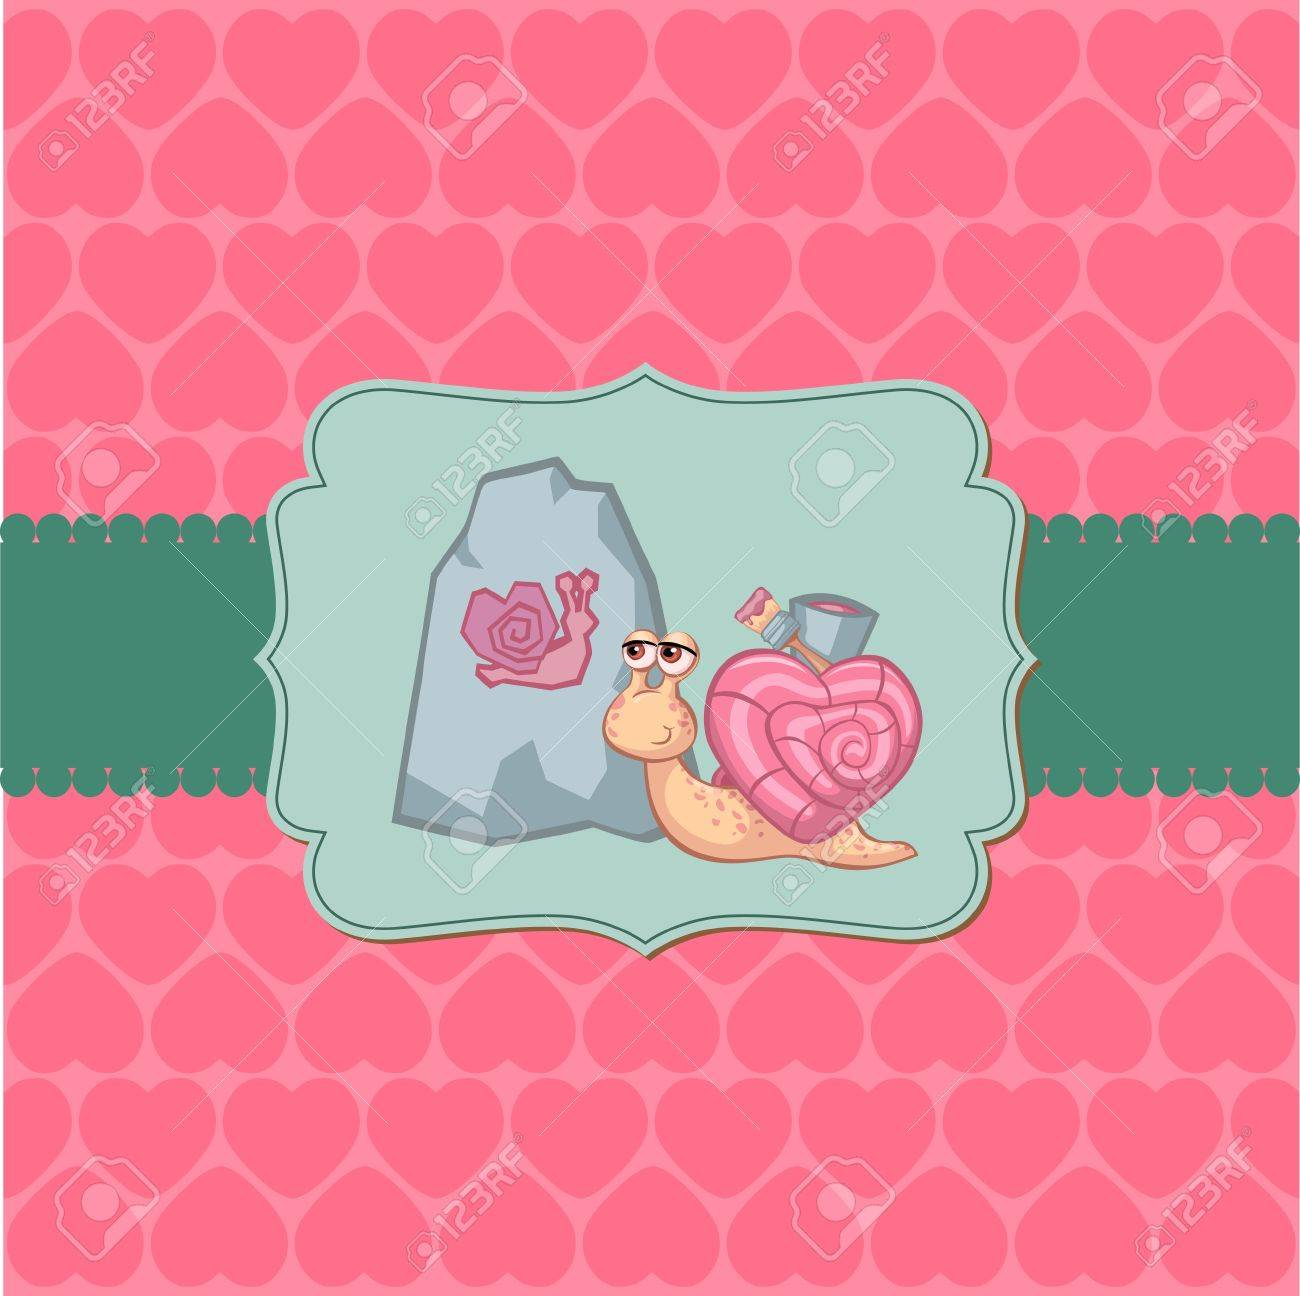 Cute Love Card - for Valentine's day, scrapbooking Stock Vector - 11975040